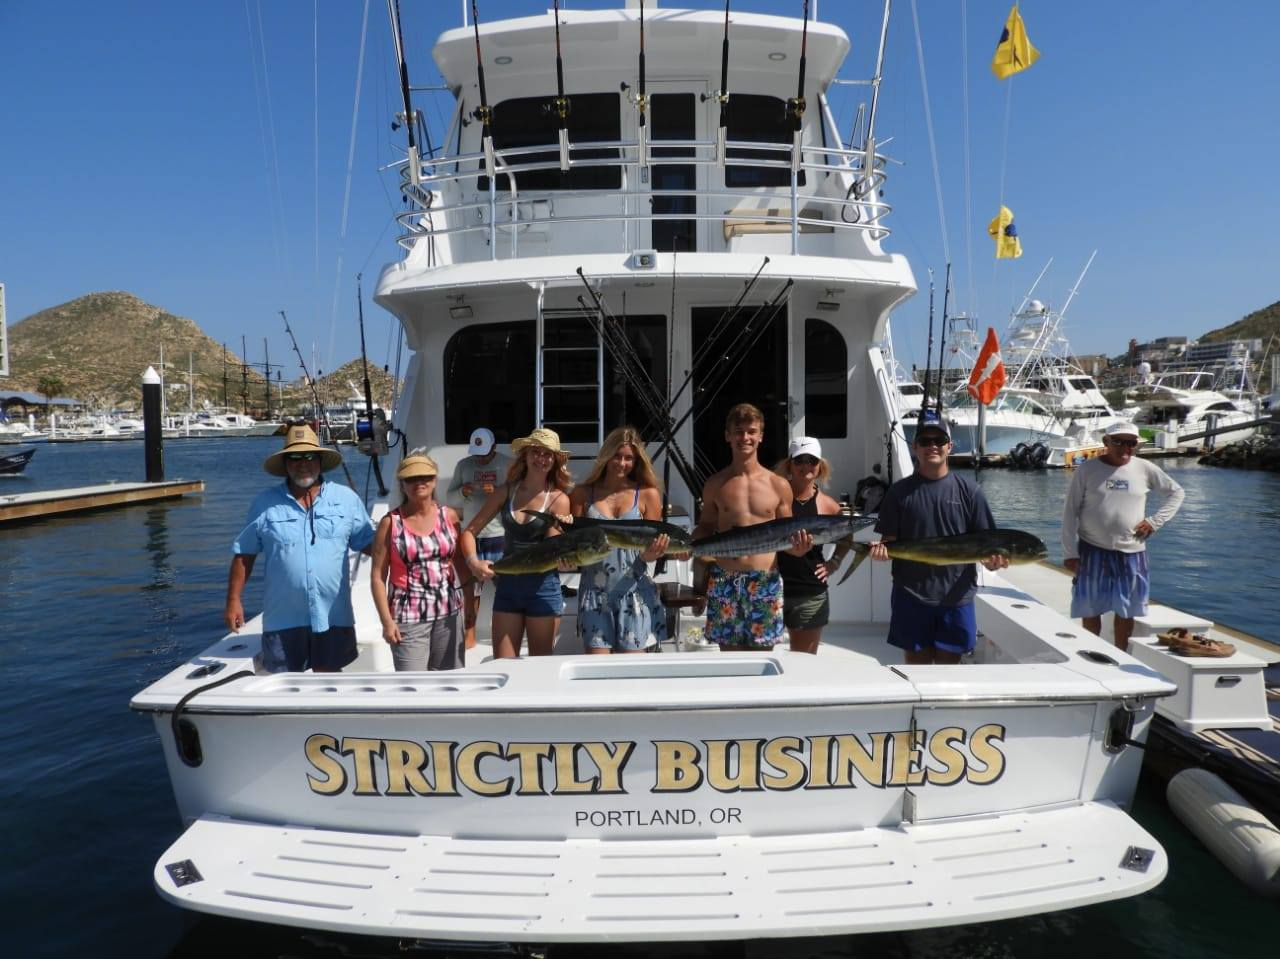 strictly business boat from Portland Oregon